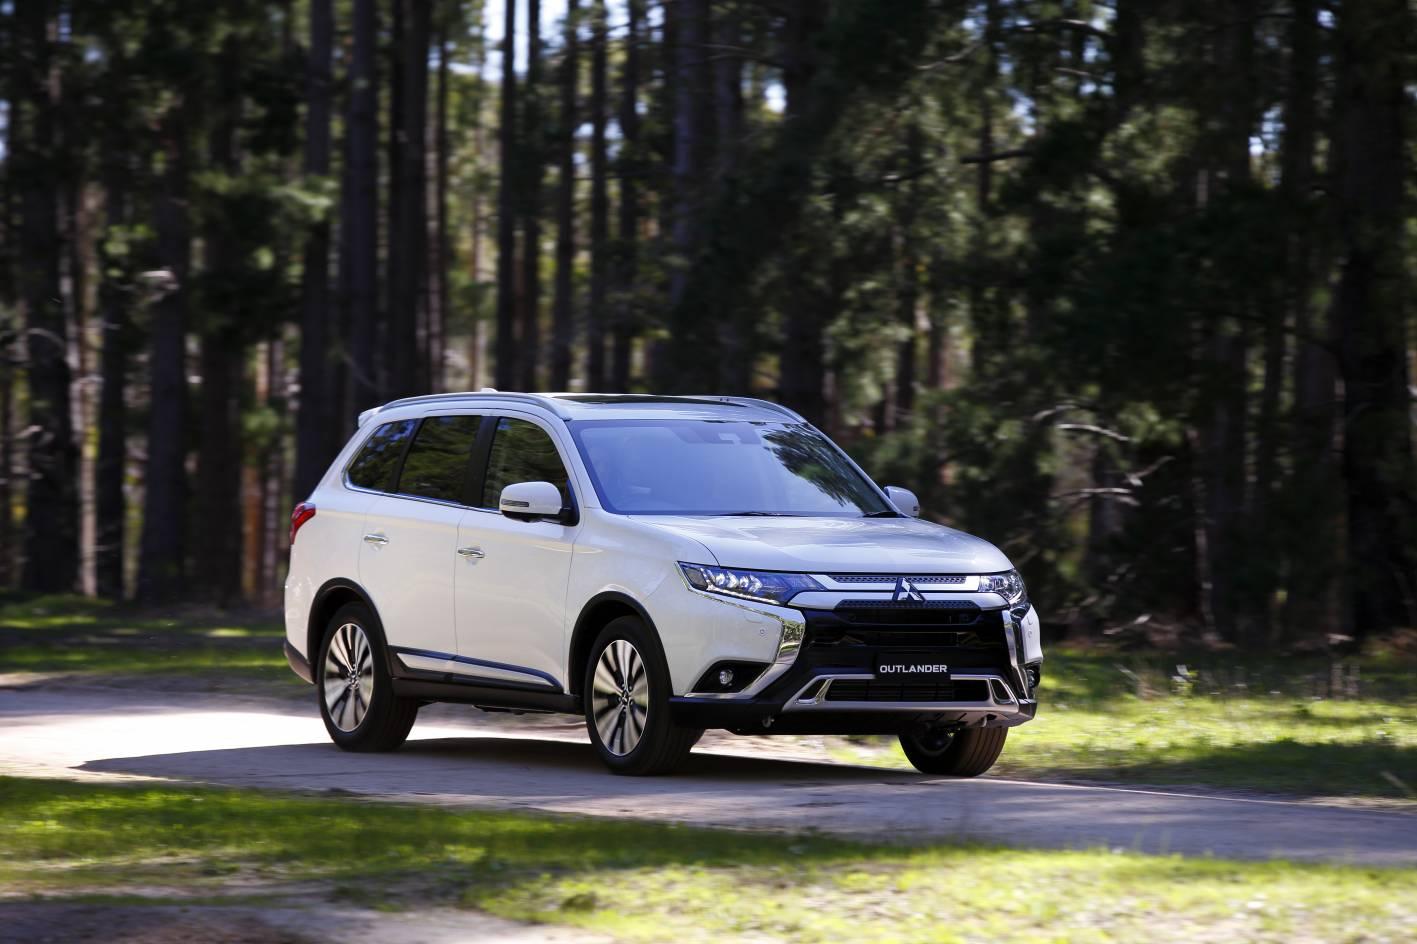 Mitsubishi's long-standing Outlander SUV gets some welcome updates for the 2020 model year.